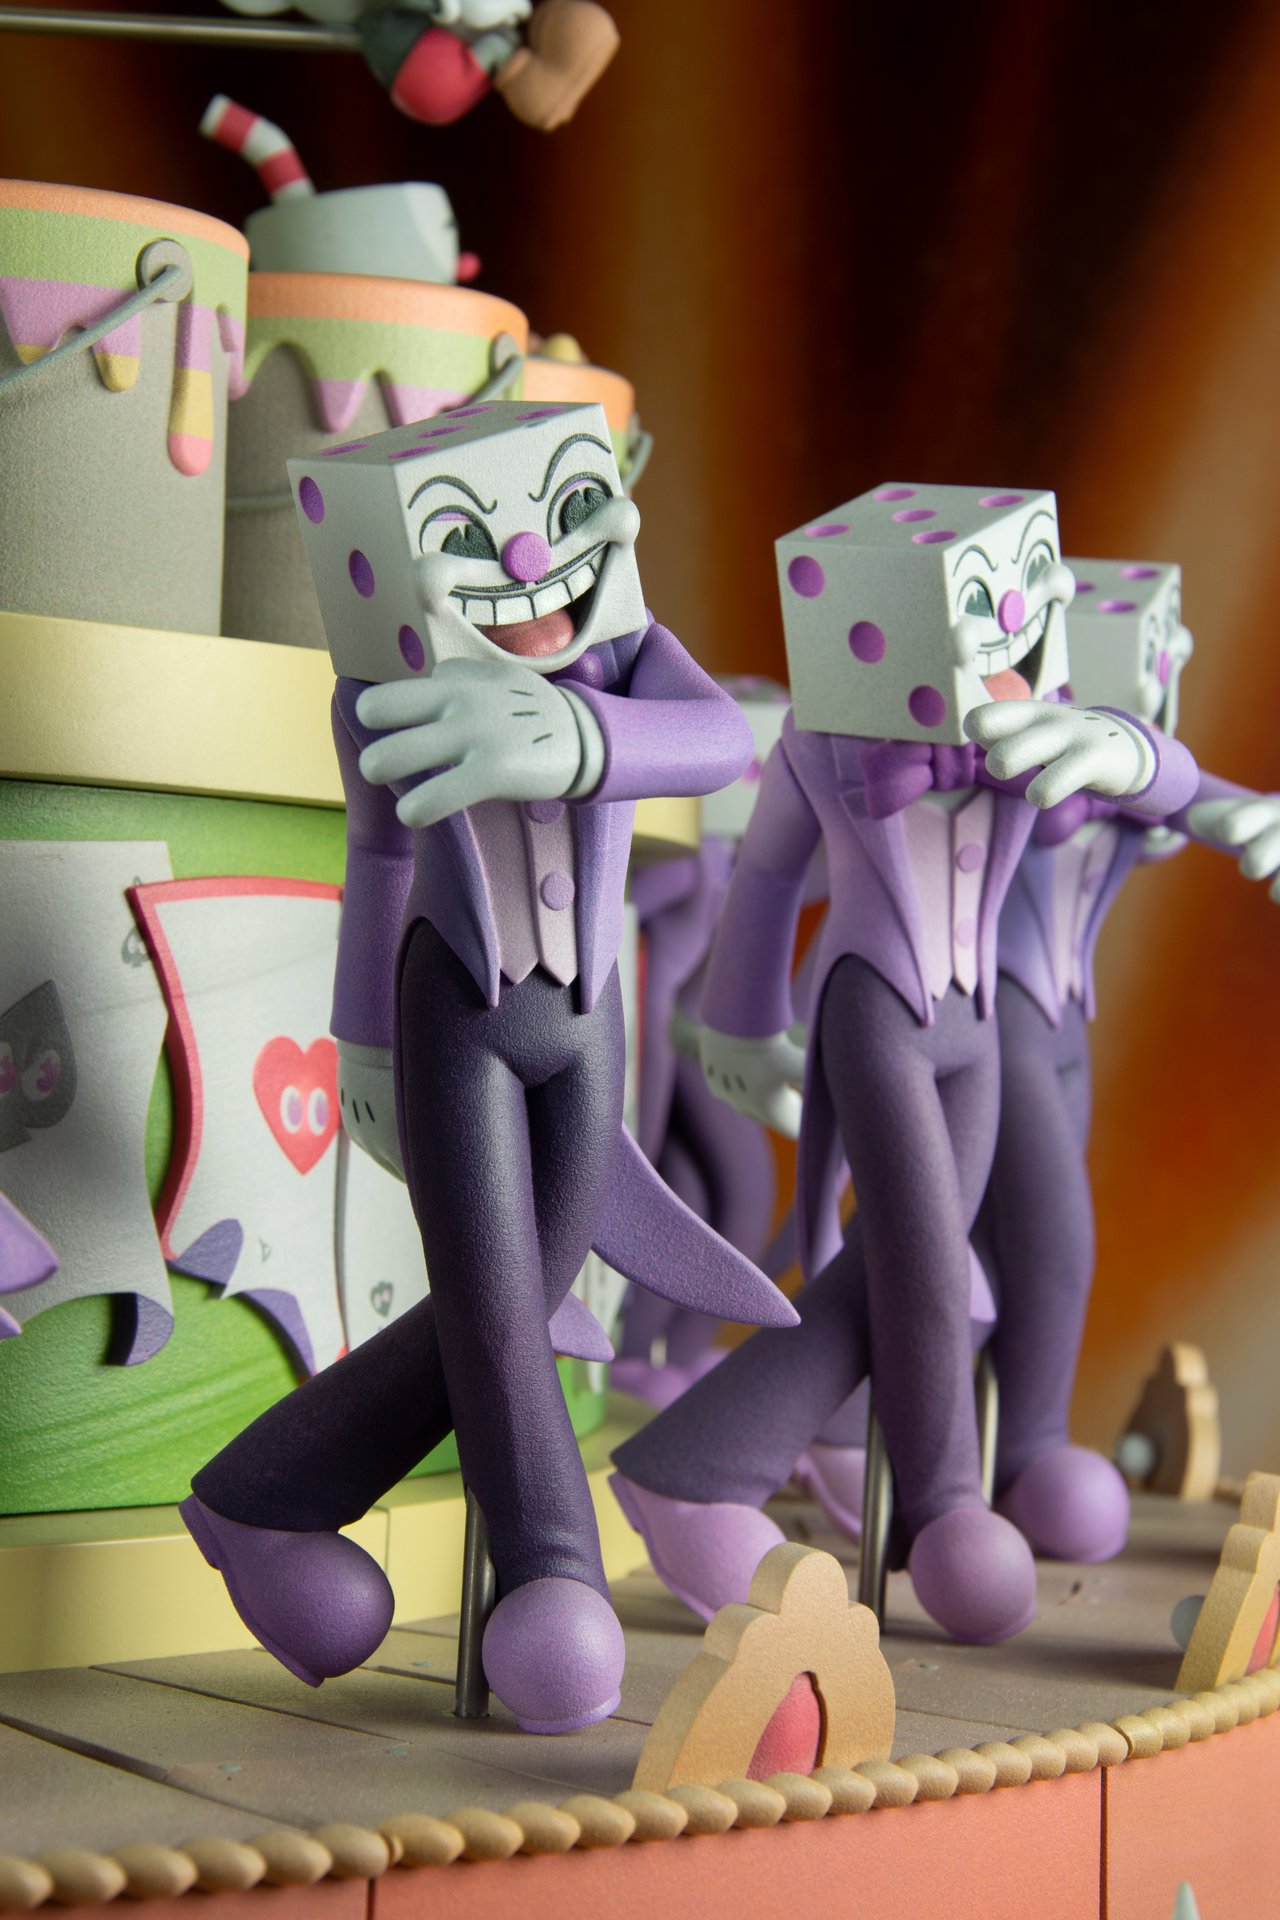 King Dice as featured in the Cuphead Zoetrope at ACMI